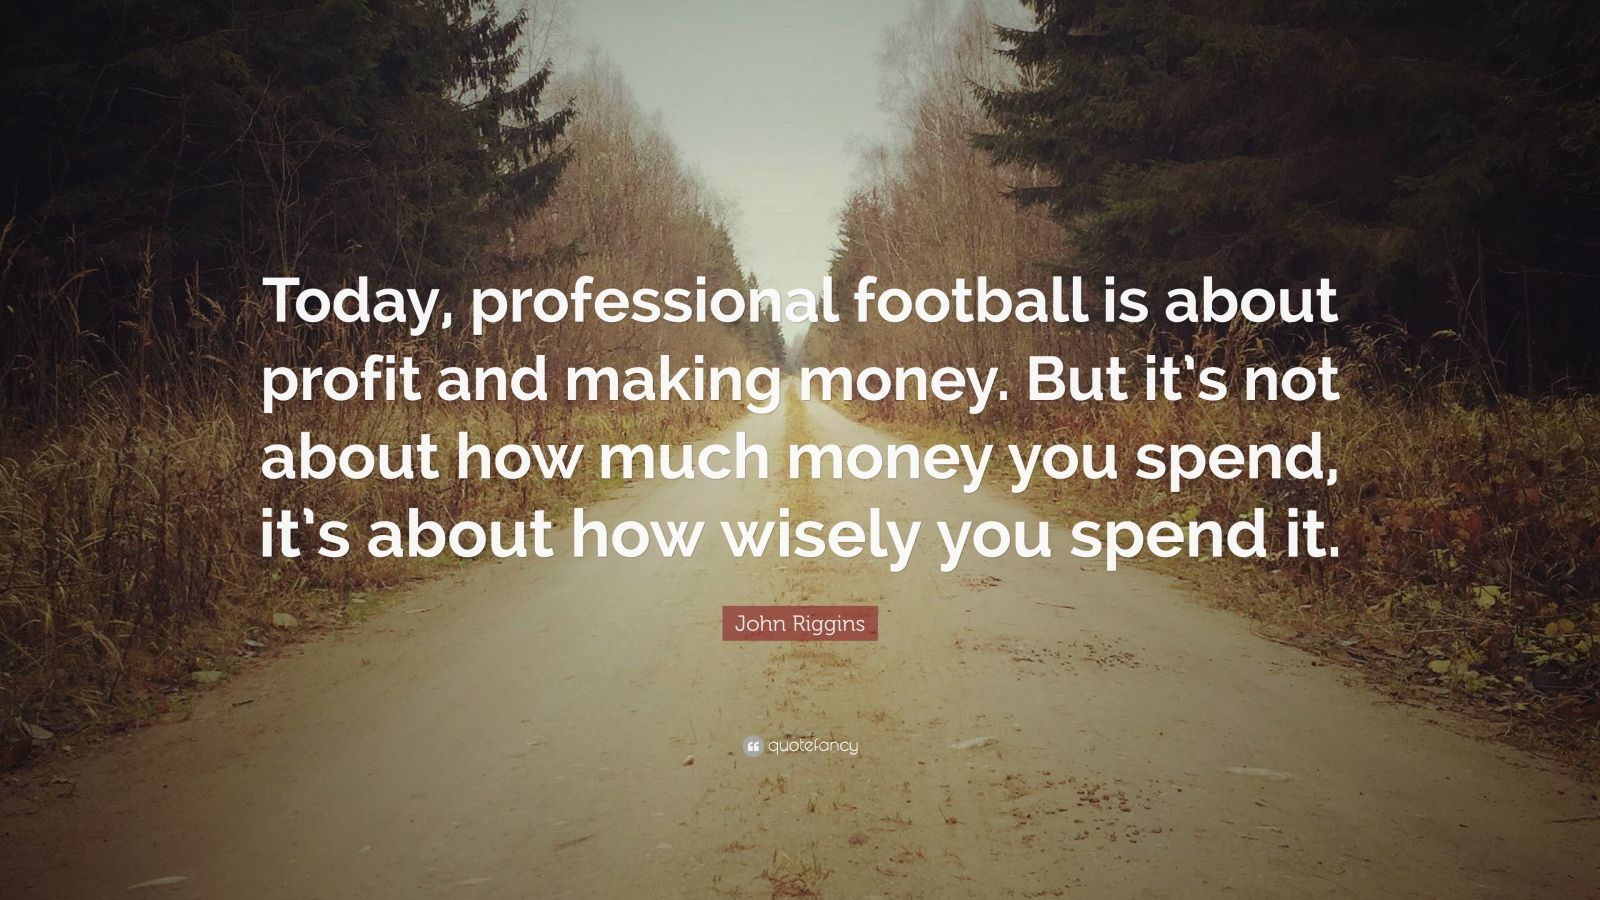 """John Riggins Quote: """"Today, professional football is about profit and making money. But it's not about how much money you spend, it's about how wisely you spend it."""""""